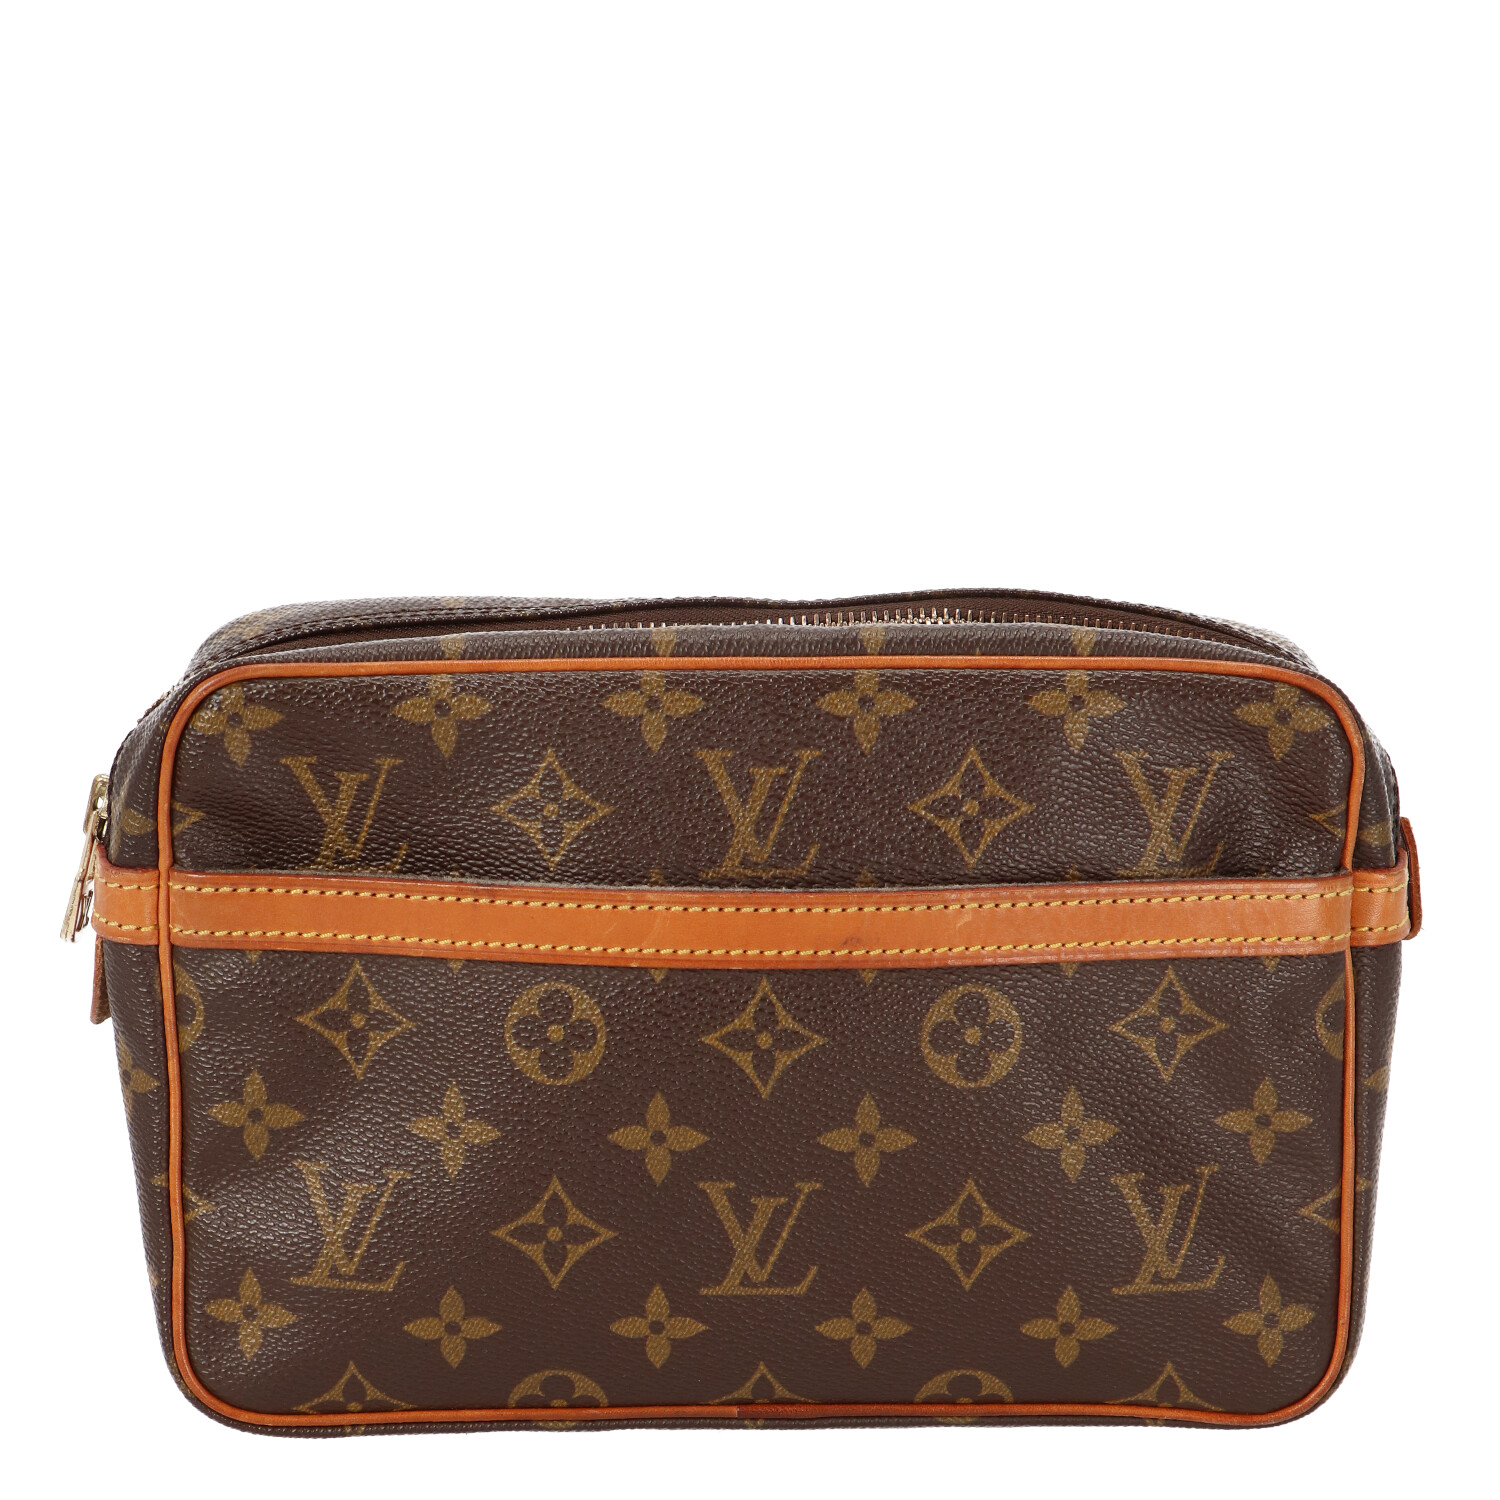 Monogram Canvas Compiegne 23